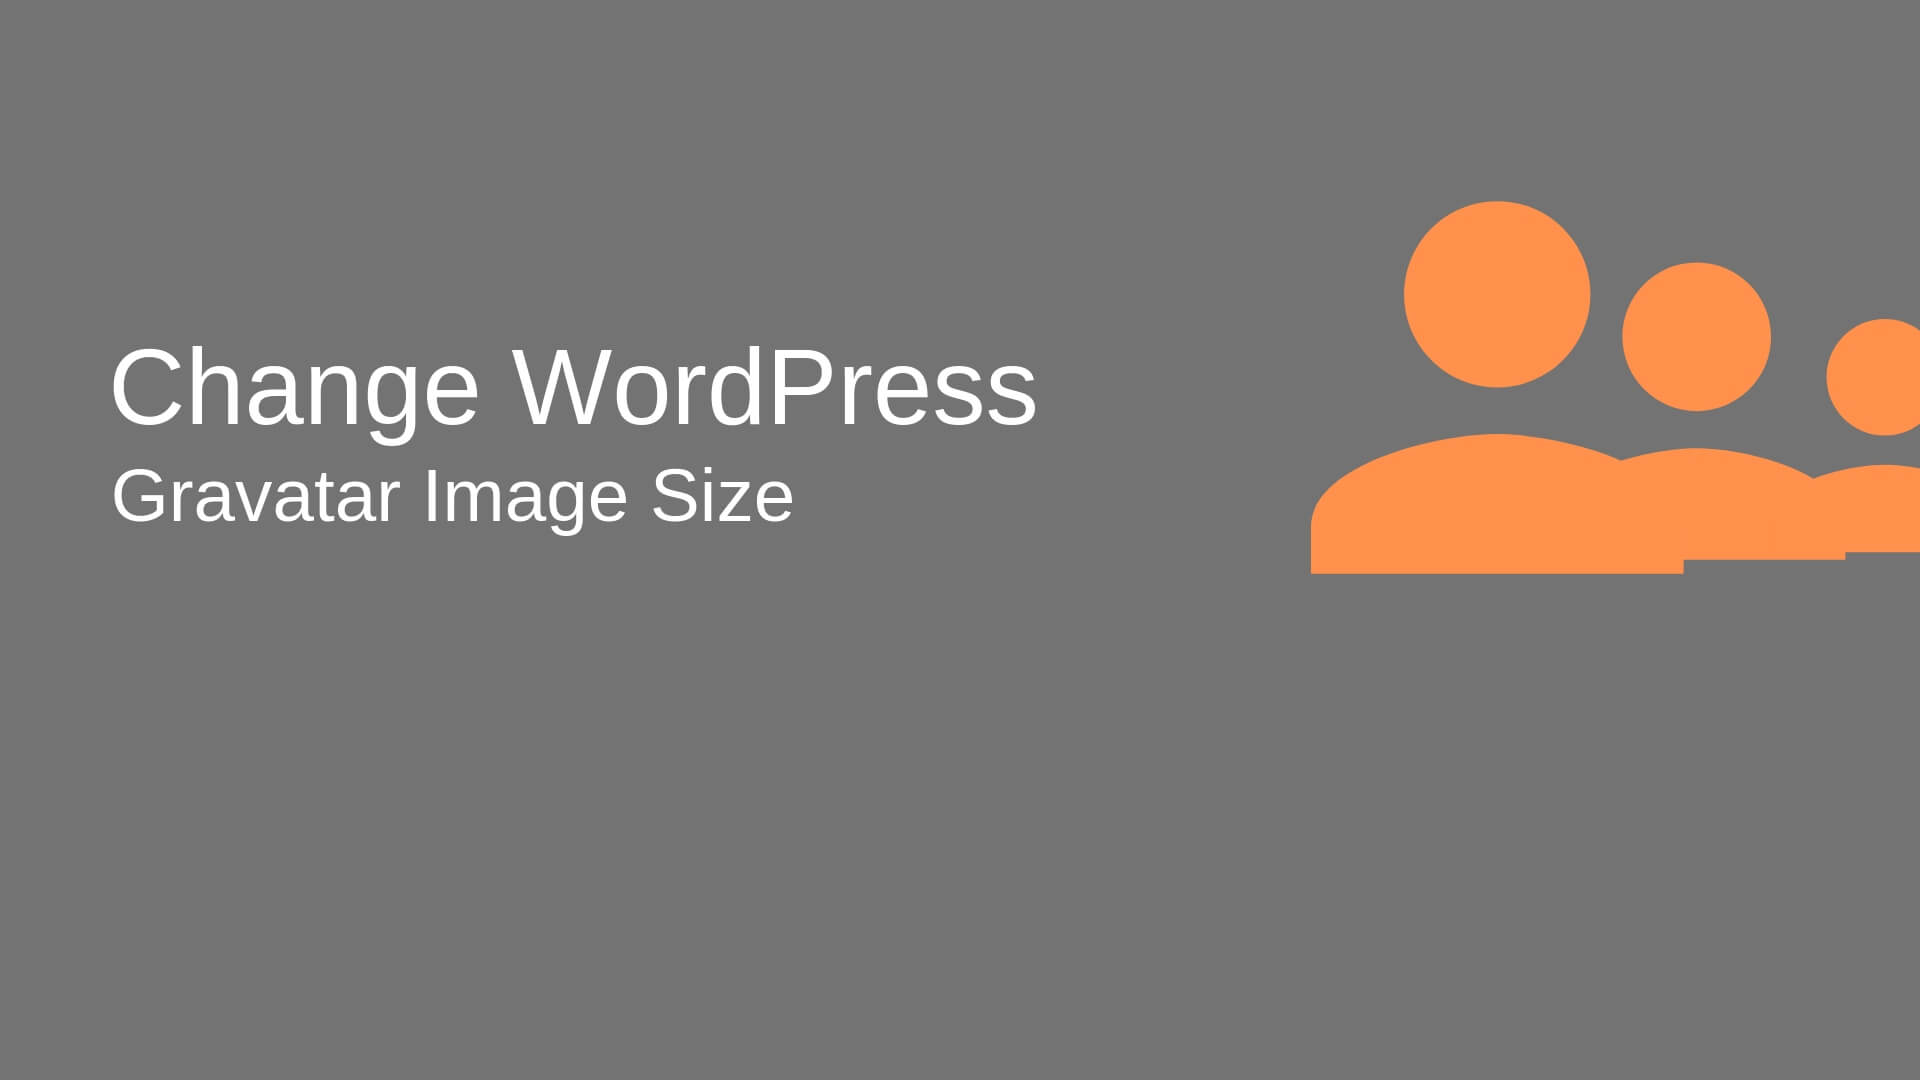 How to Change Gravatar Image size in a WordPress site